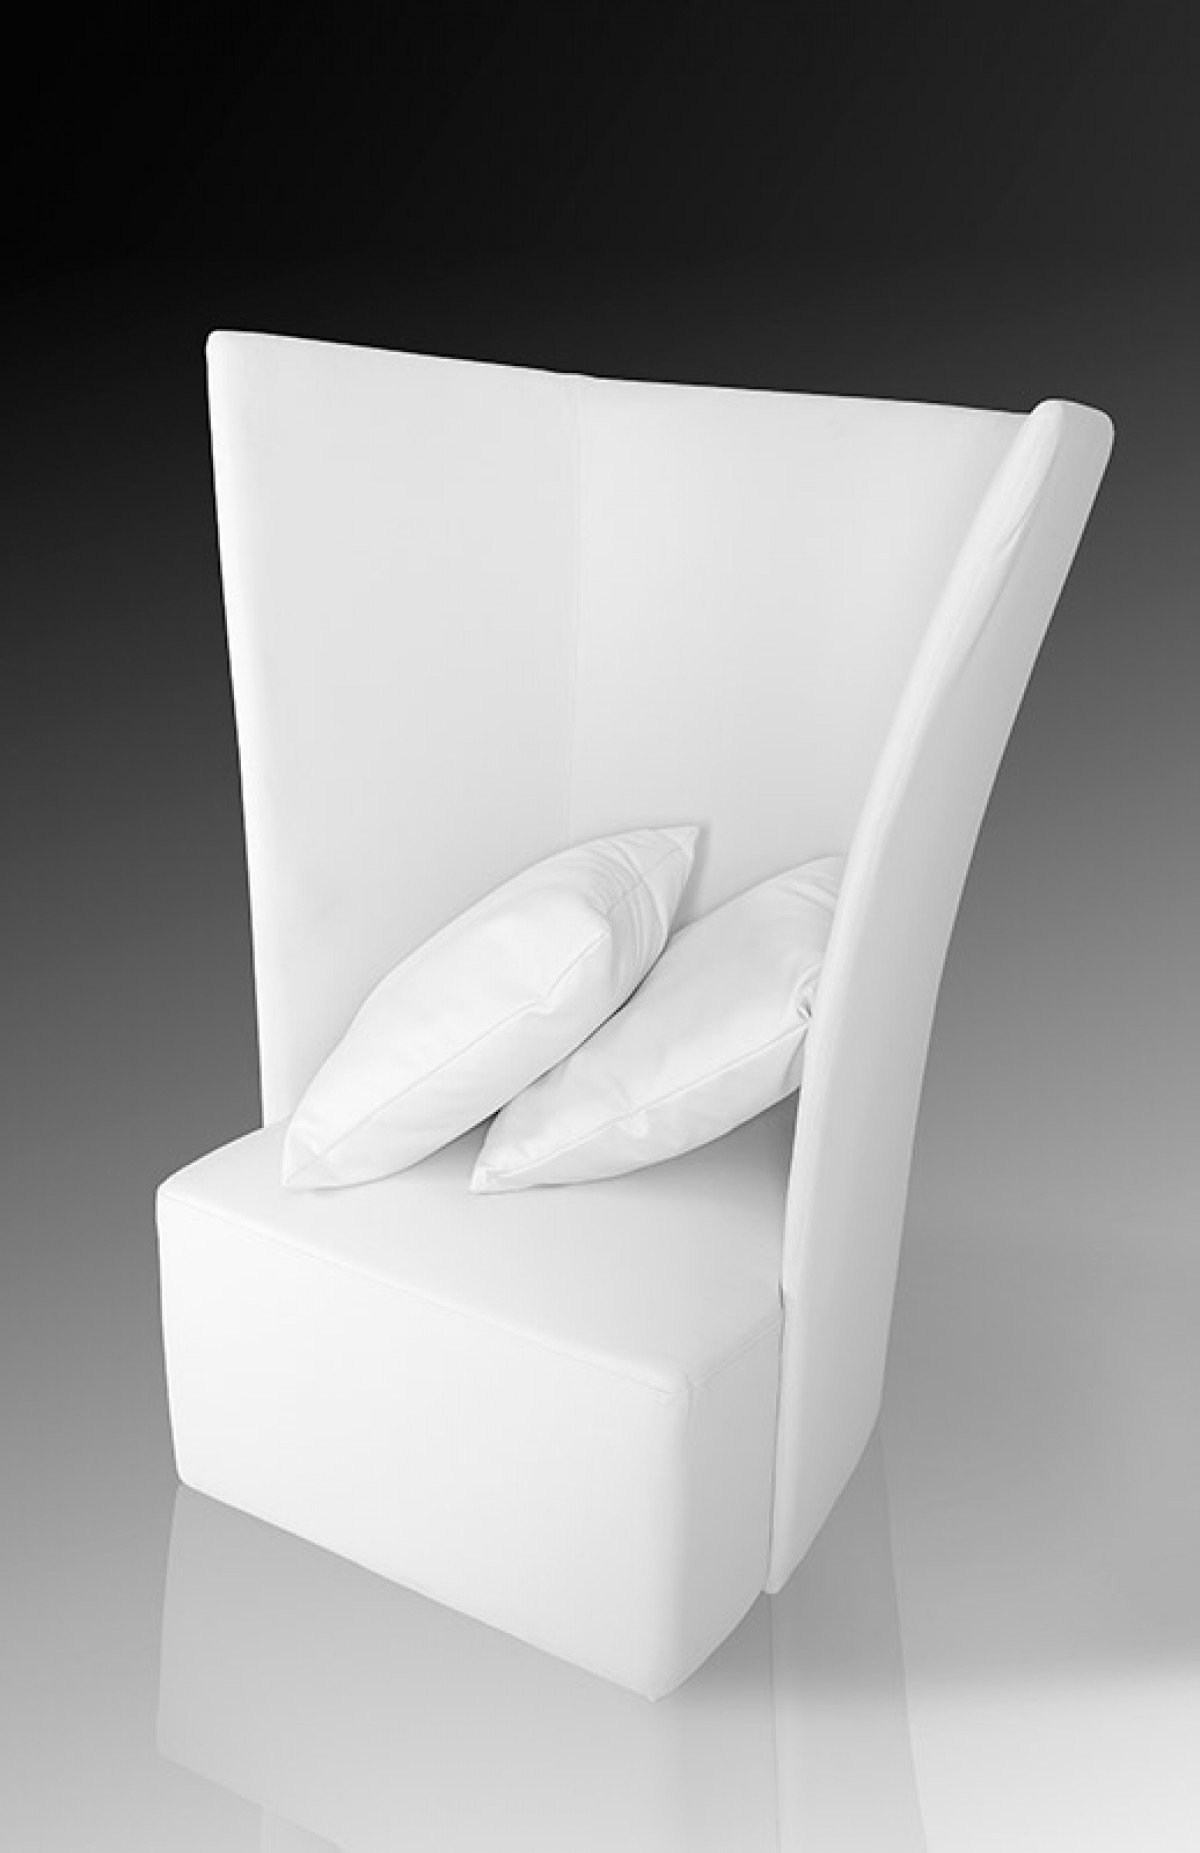 Exceptionnel Lounge Chaises And Daybeds, Stylish Accessories. Modern High Back White  Leather Leisure Chair